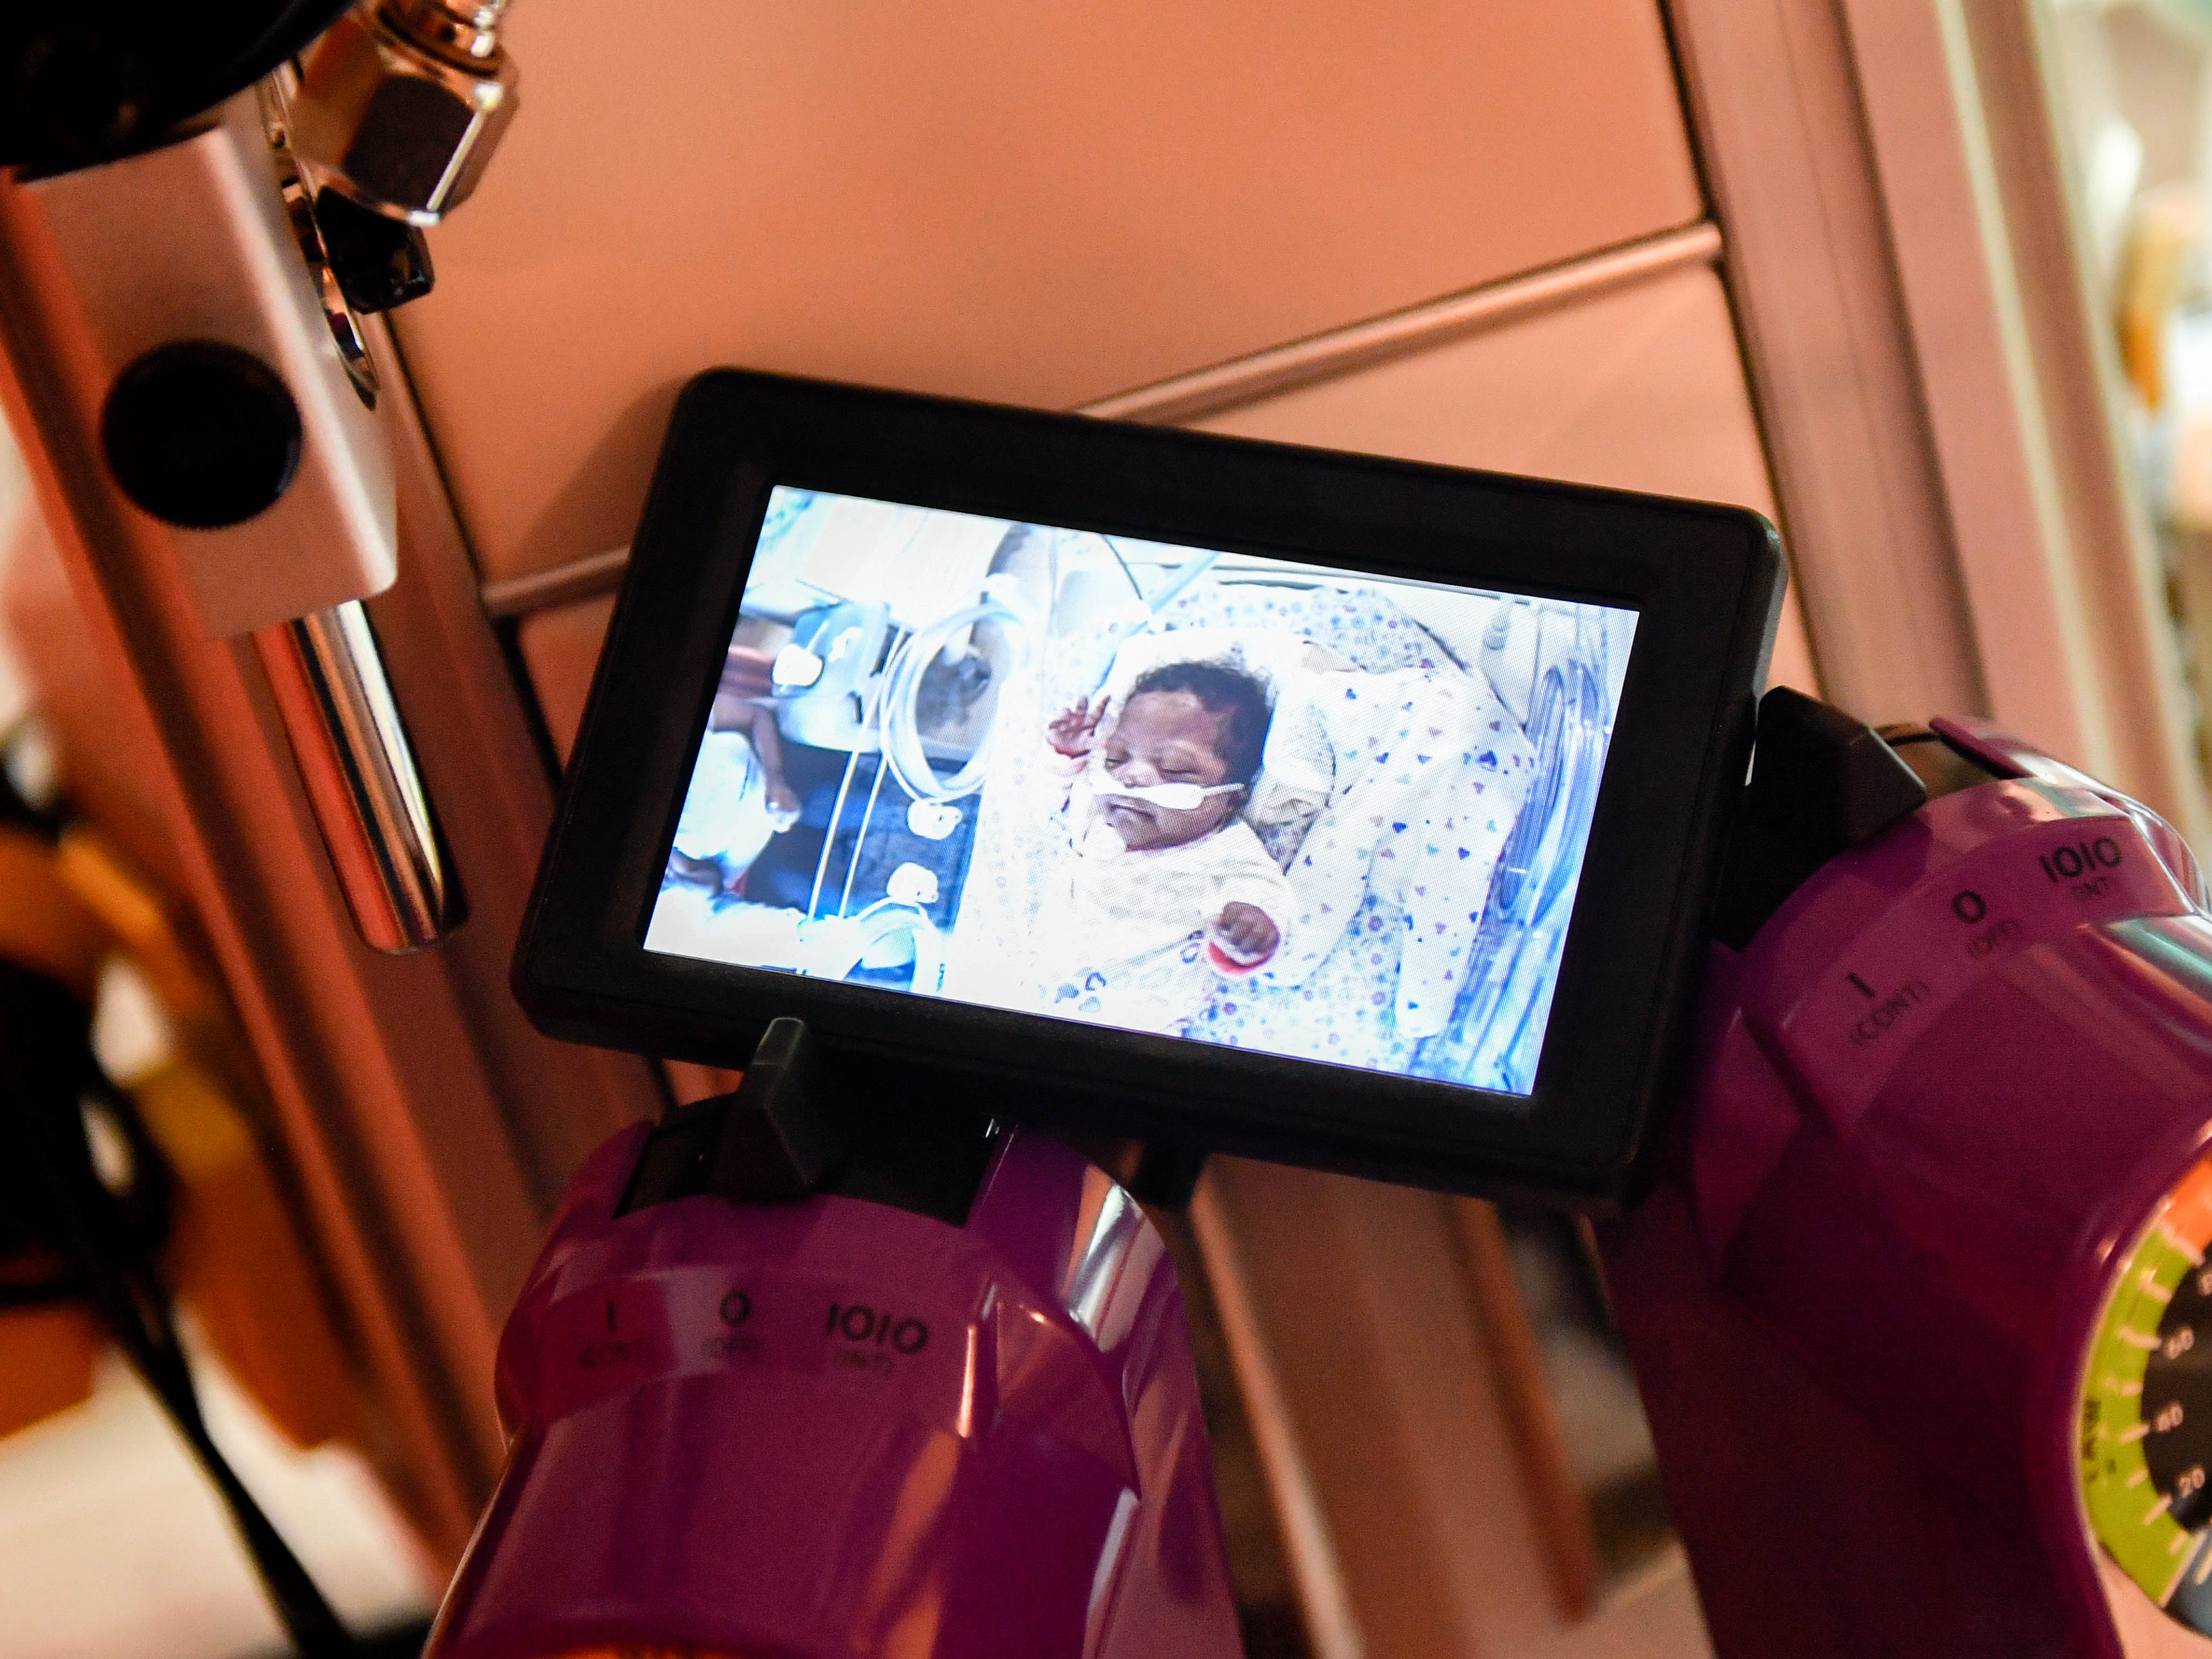 A little monitor next to the baby shows when the Angel Eye camera is live-streaming. This allows nurses to know that everything is working properly.